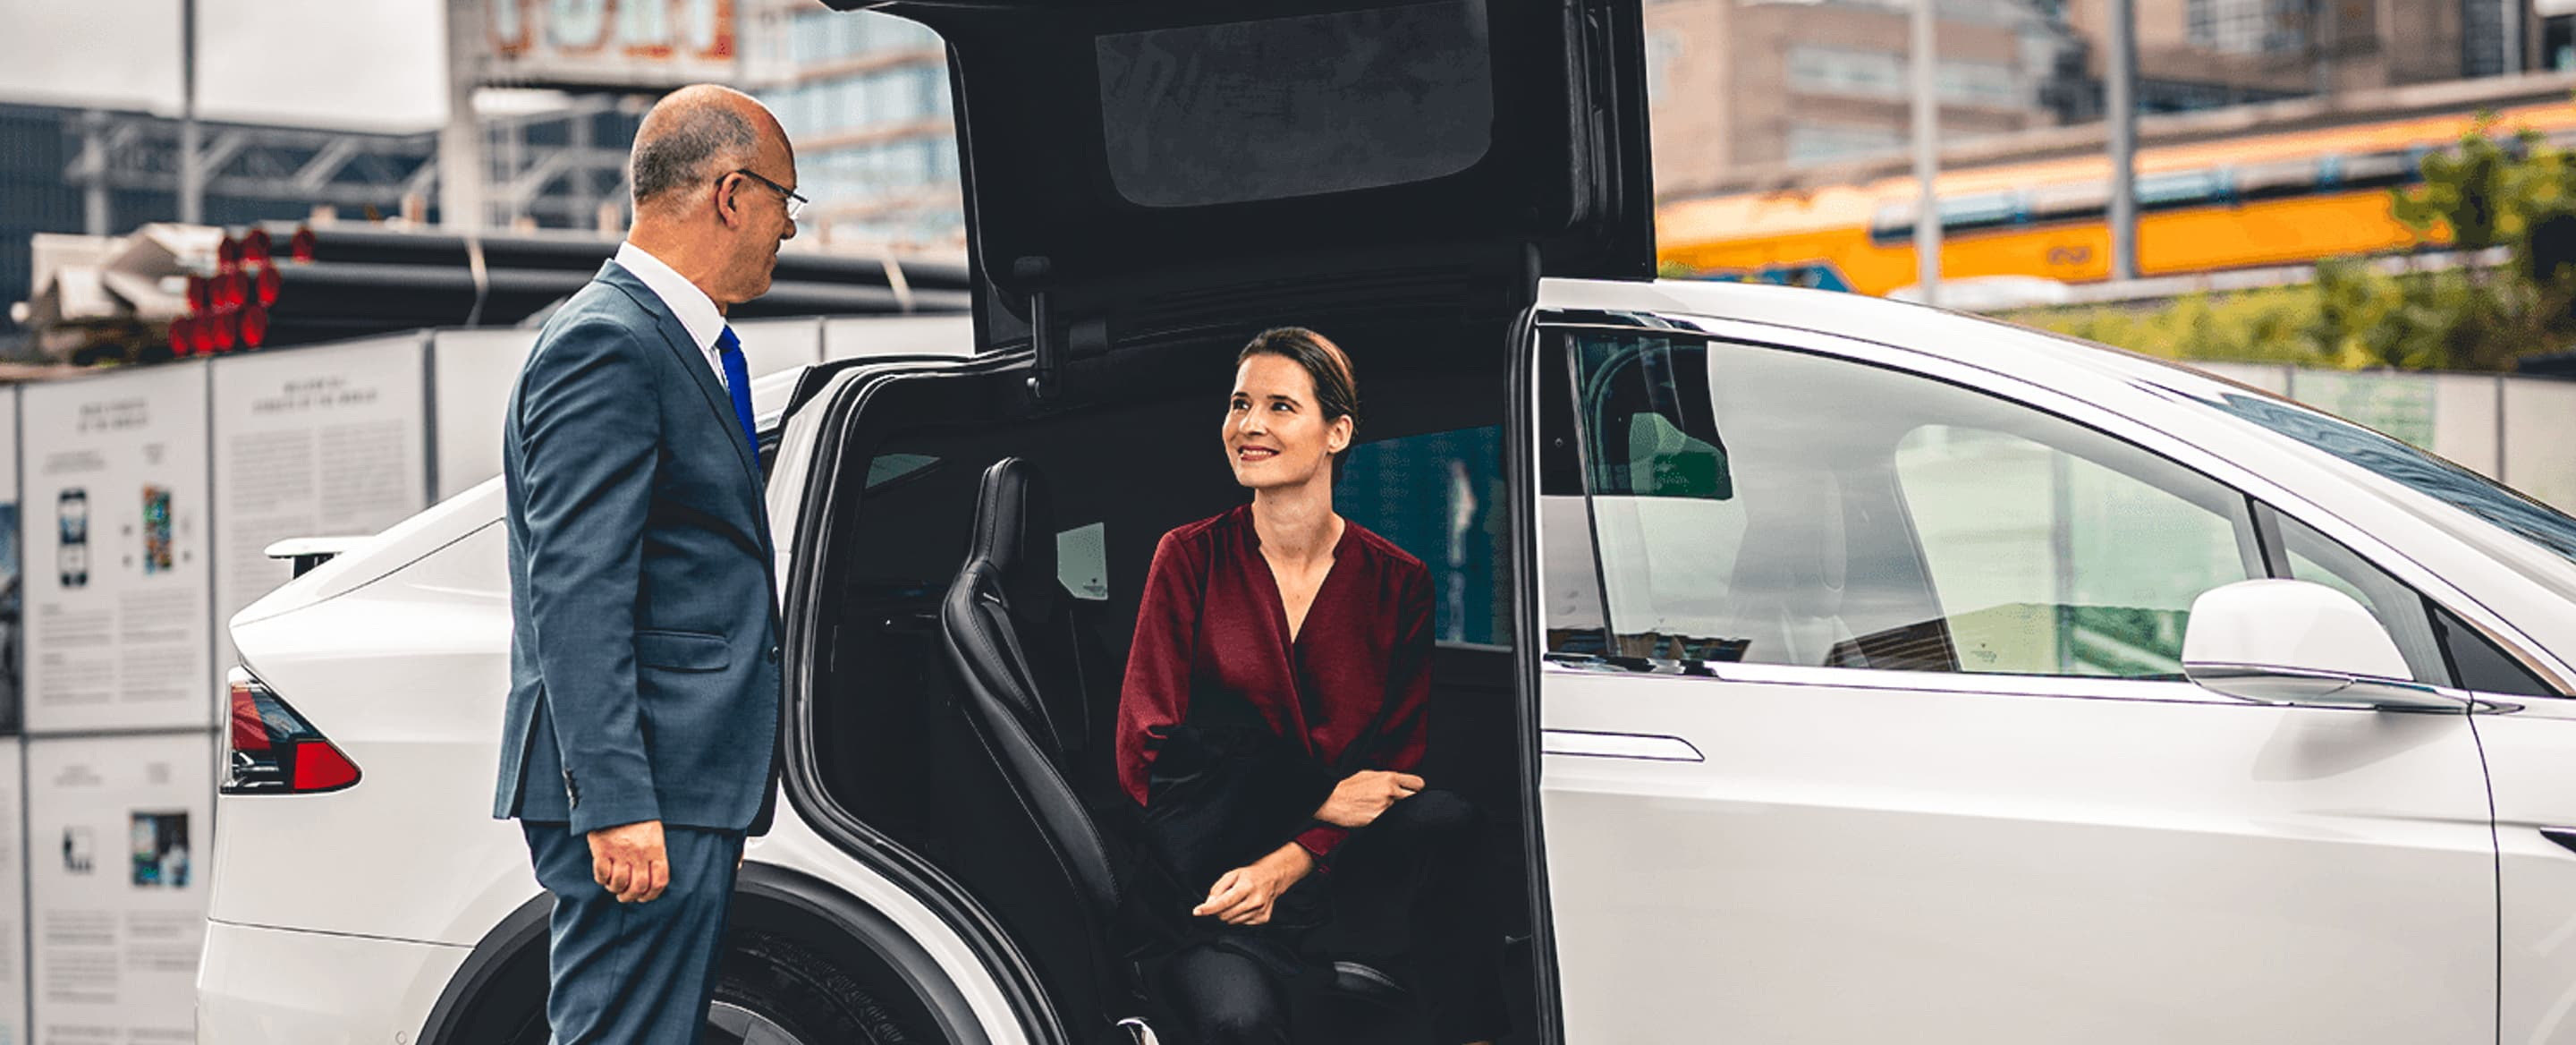 A new airport pick-up experience for hotel guests